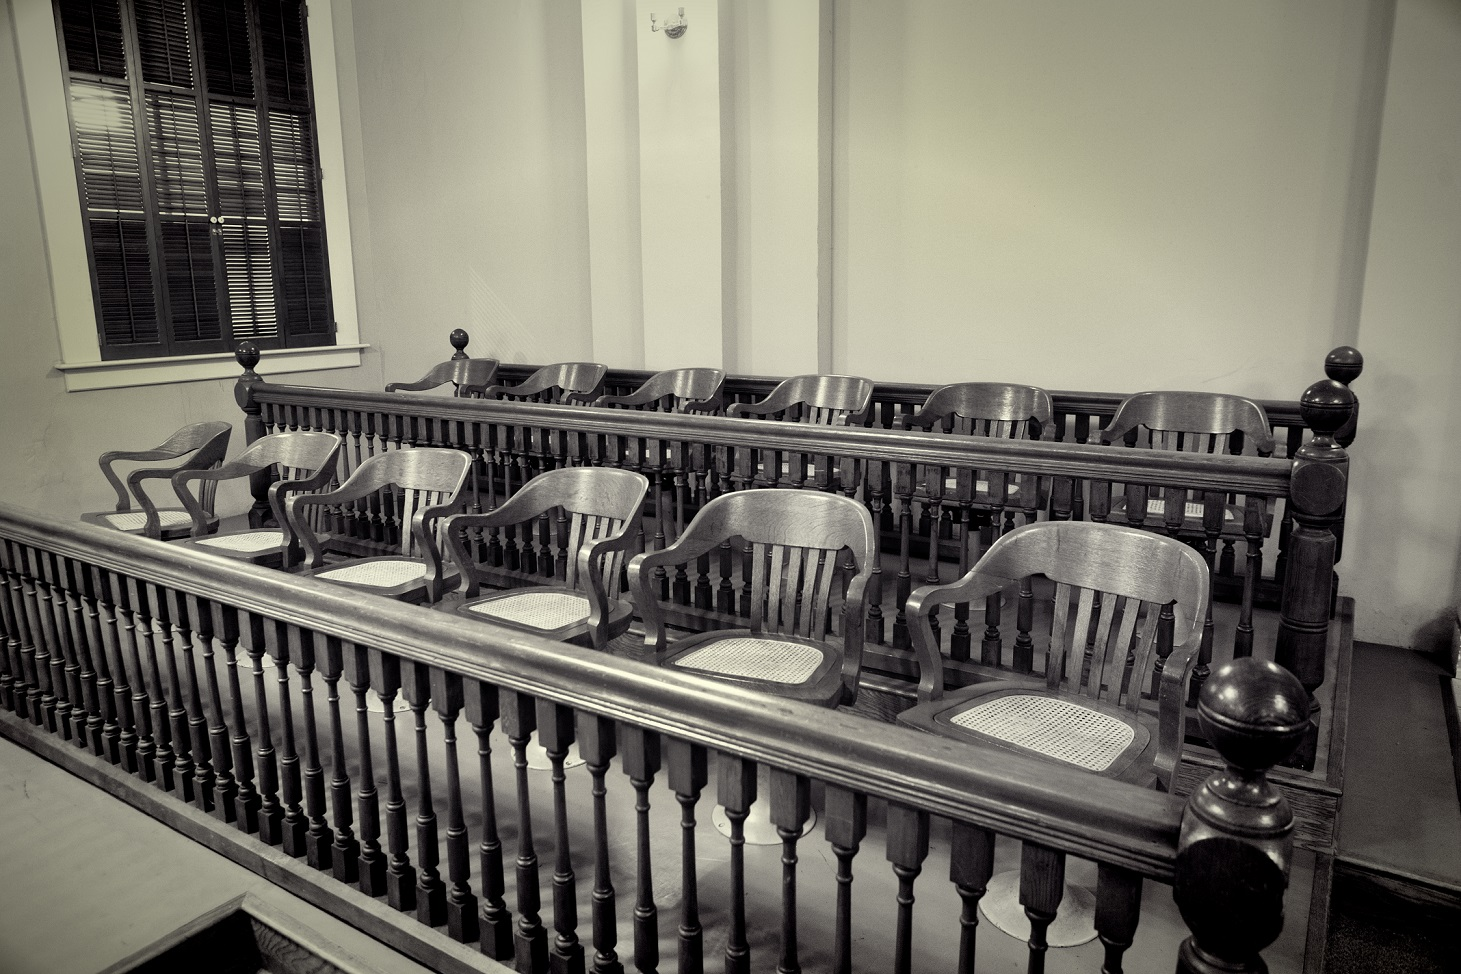 empty jury chairs